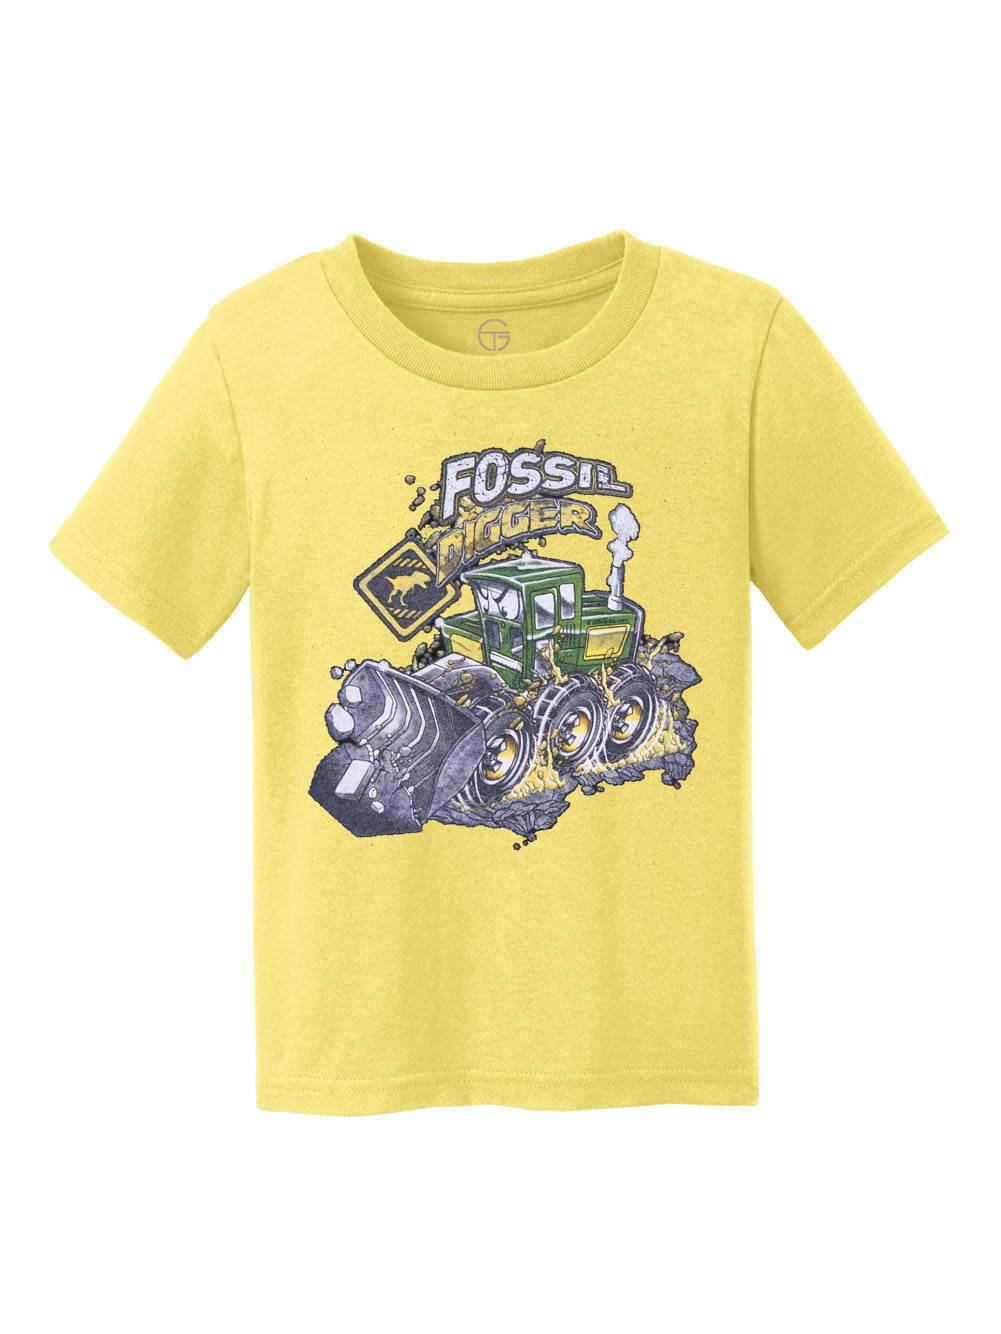 Fossil Digger Youth Cotton T-Shirt